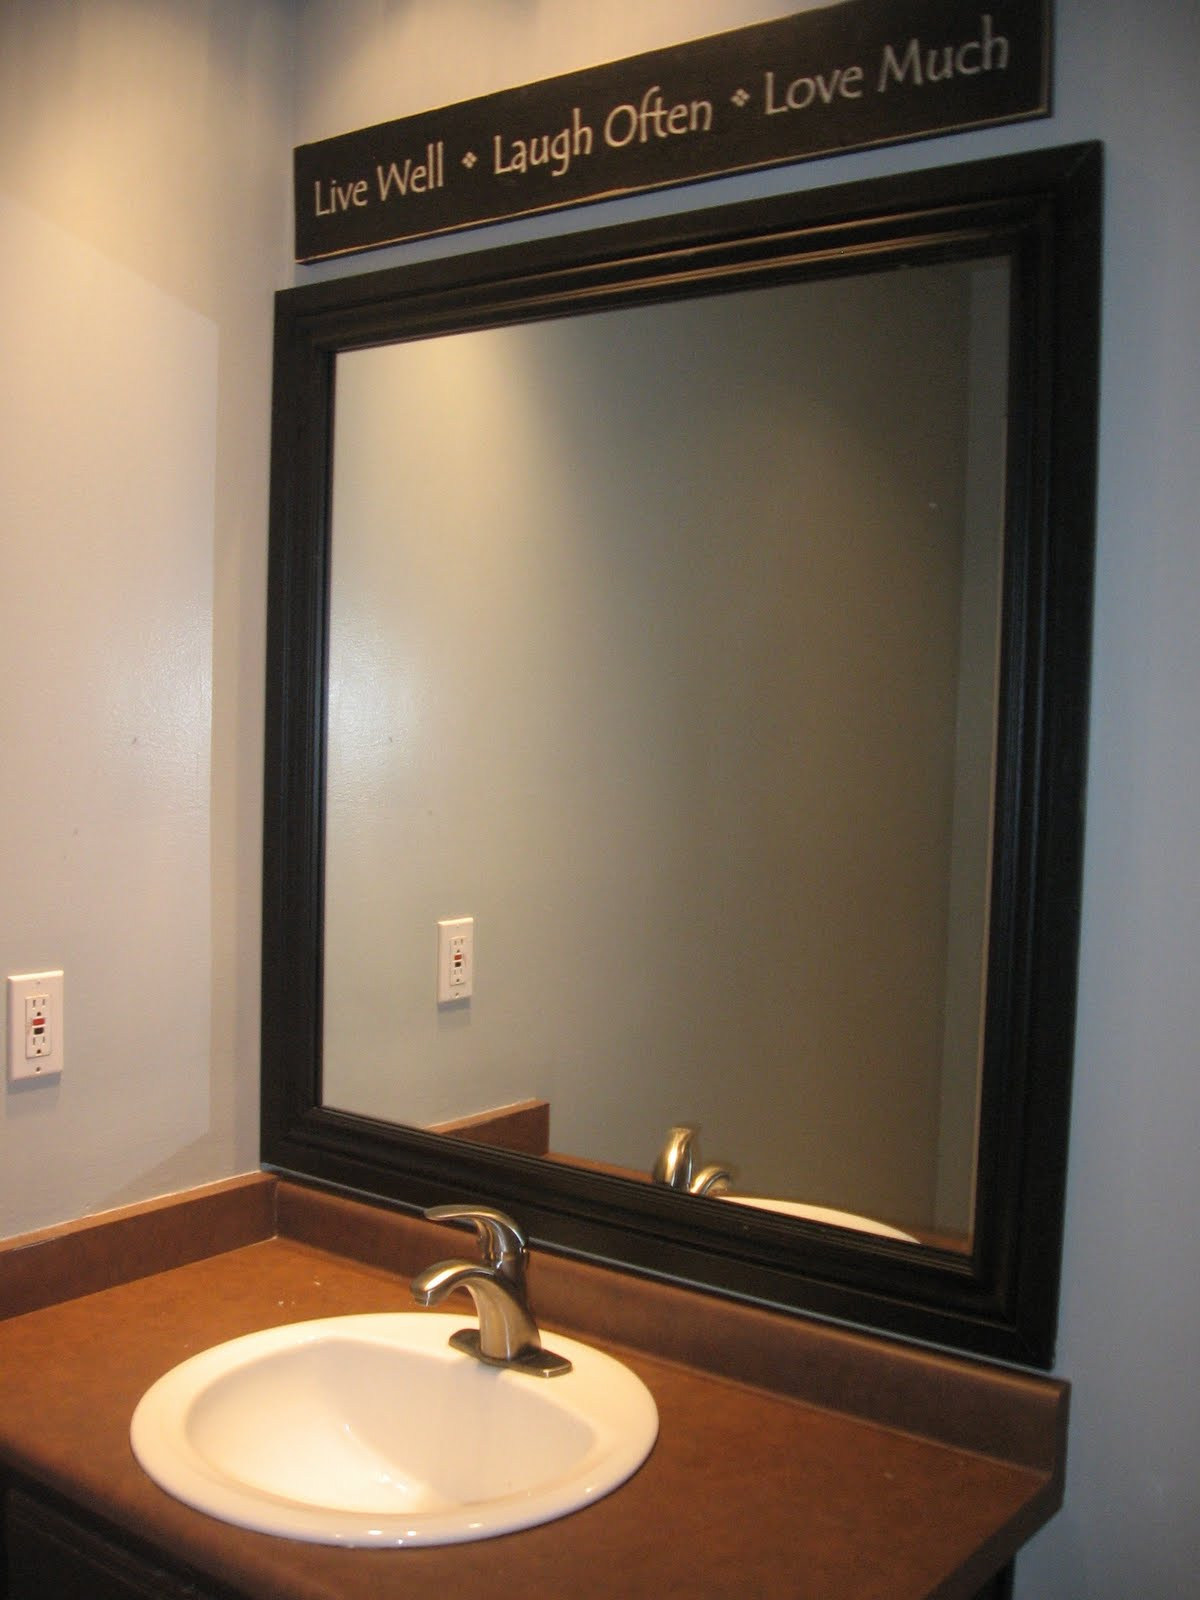 Large Framed Bathroom Mirrors 17 Best Ideas About Large Framed Mirrors On Pinterest Diy Framed Mirrors Frame Mirrors And Framed Mirrors Large Size Of Bathroomfurniture Bathroom Wall Mirror And Bath And Bathroom